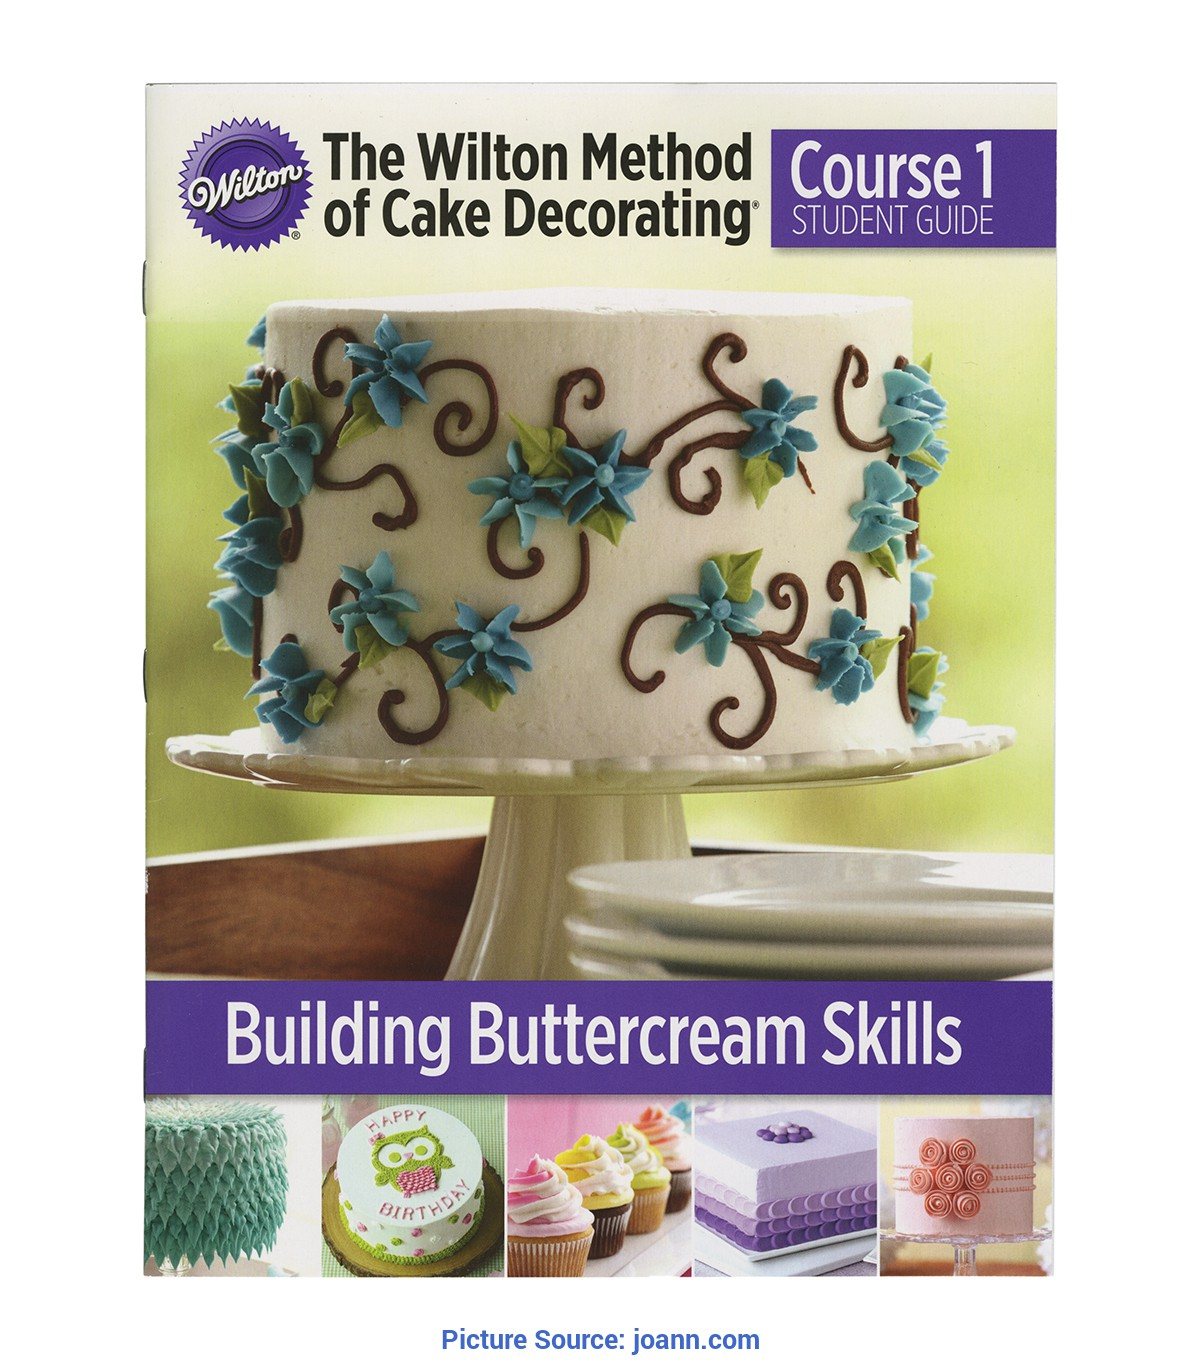 Best Wilton Lesson Plan Book In English Course 1 Wilton Lesson Plan In English Course 1 | J